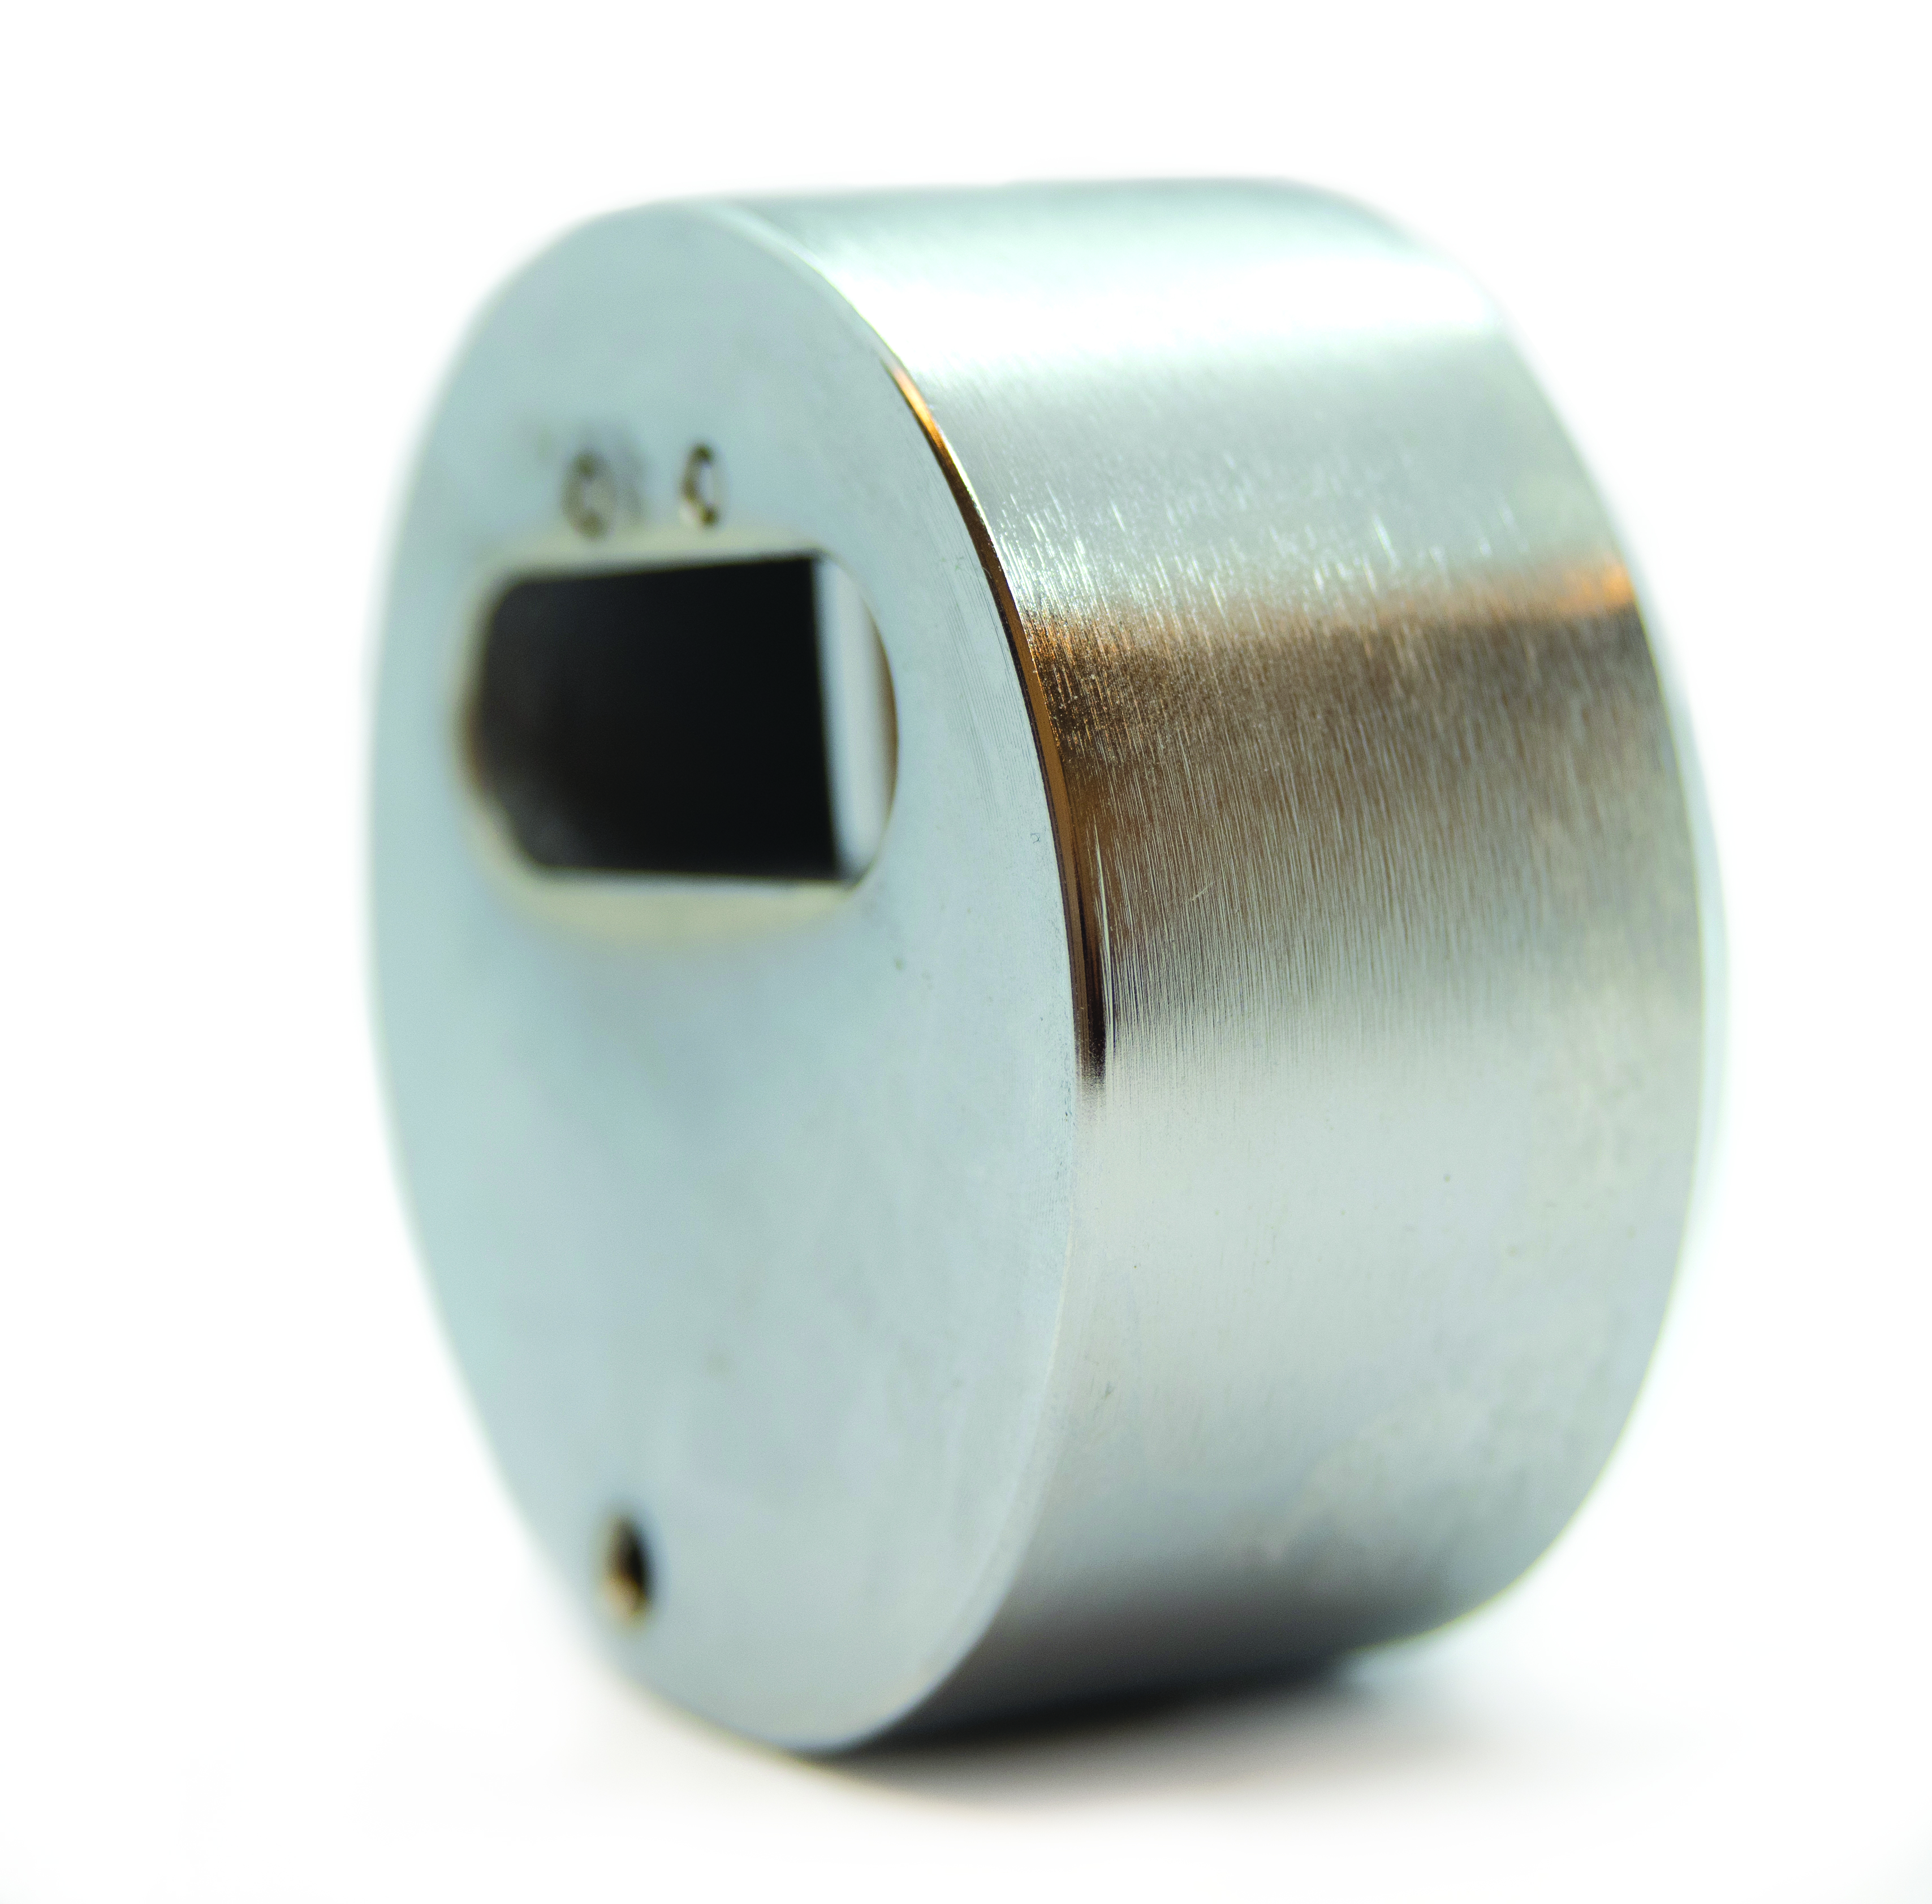 930 Series Puck Lock with Flat Back and Hardened Steel Body 930KIK